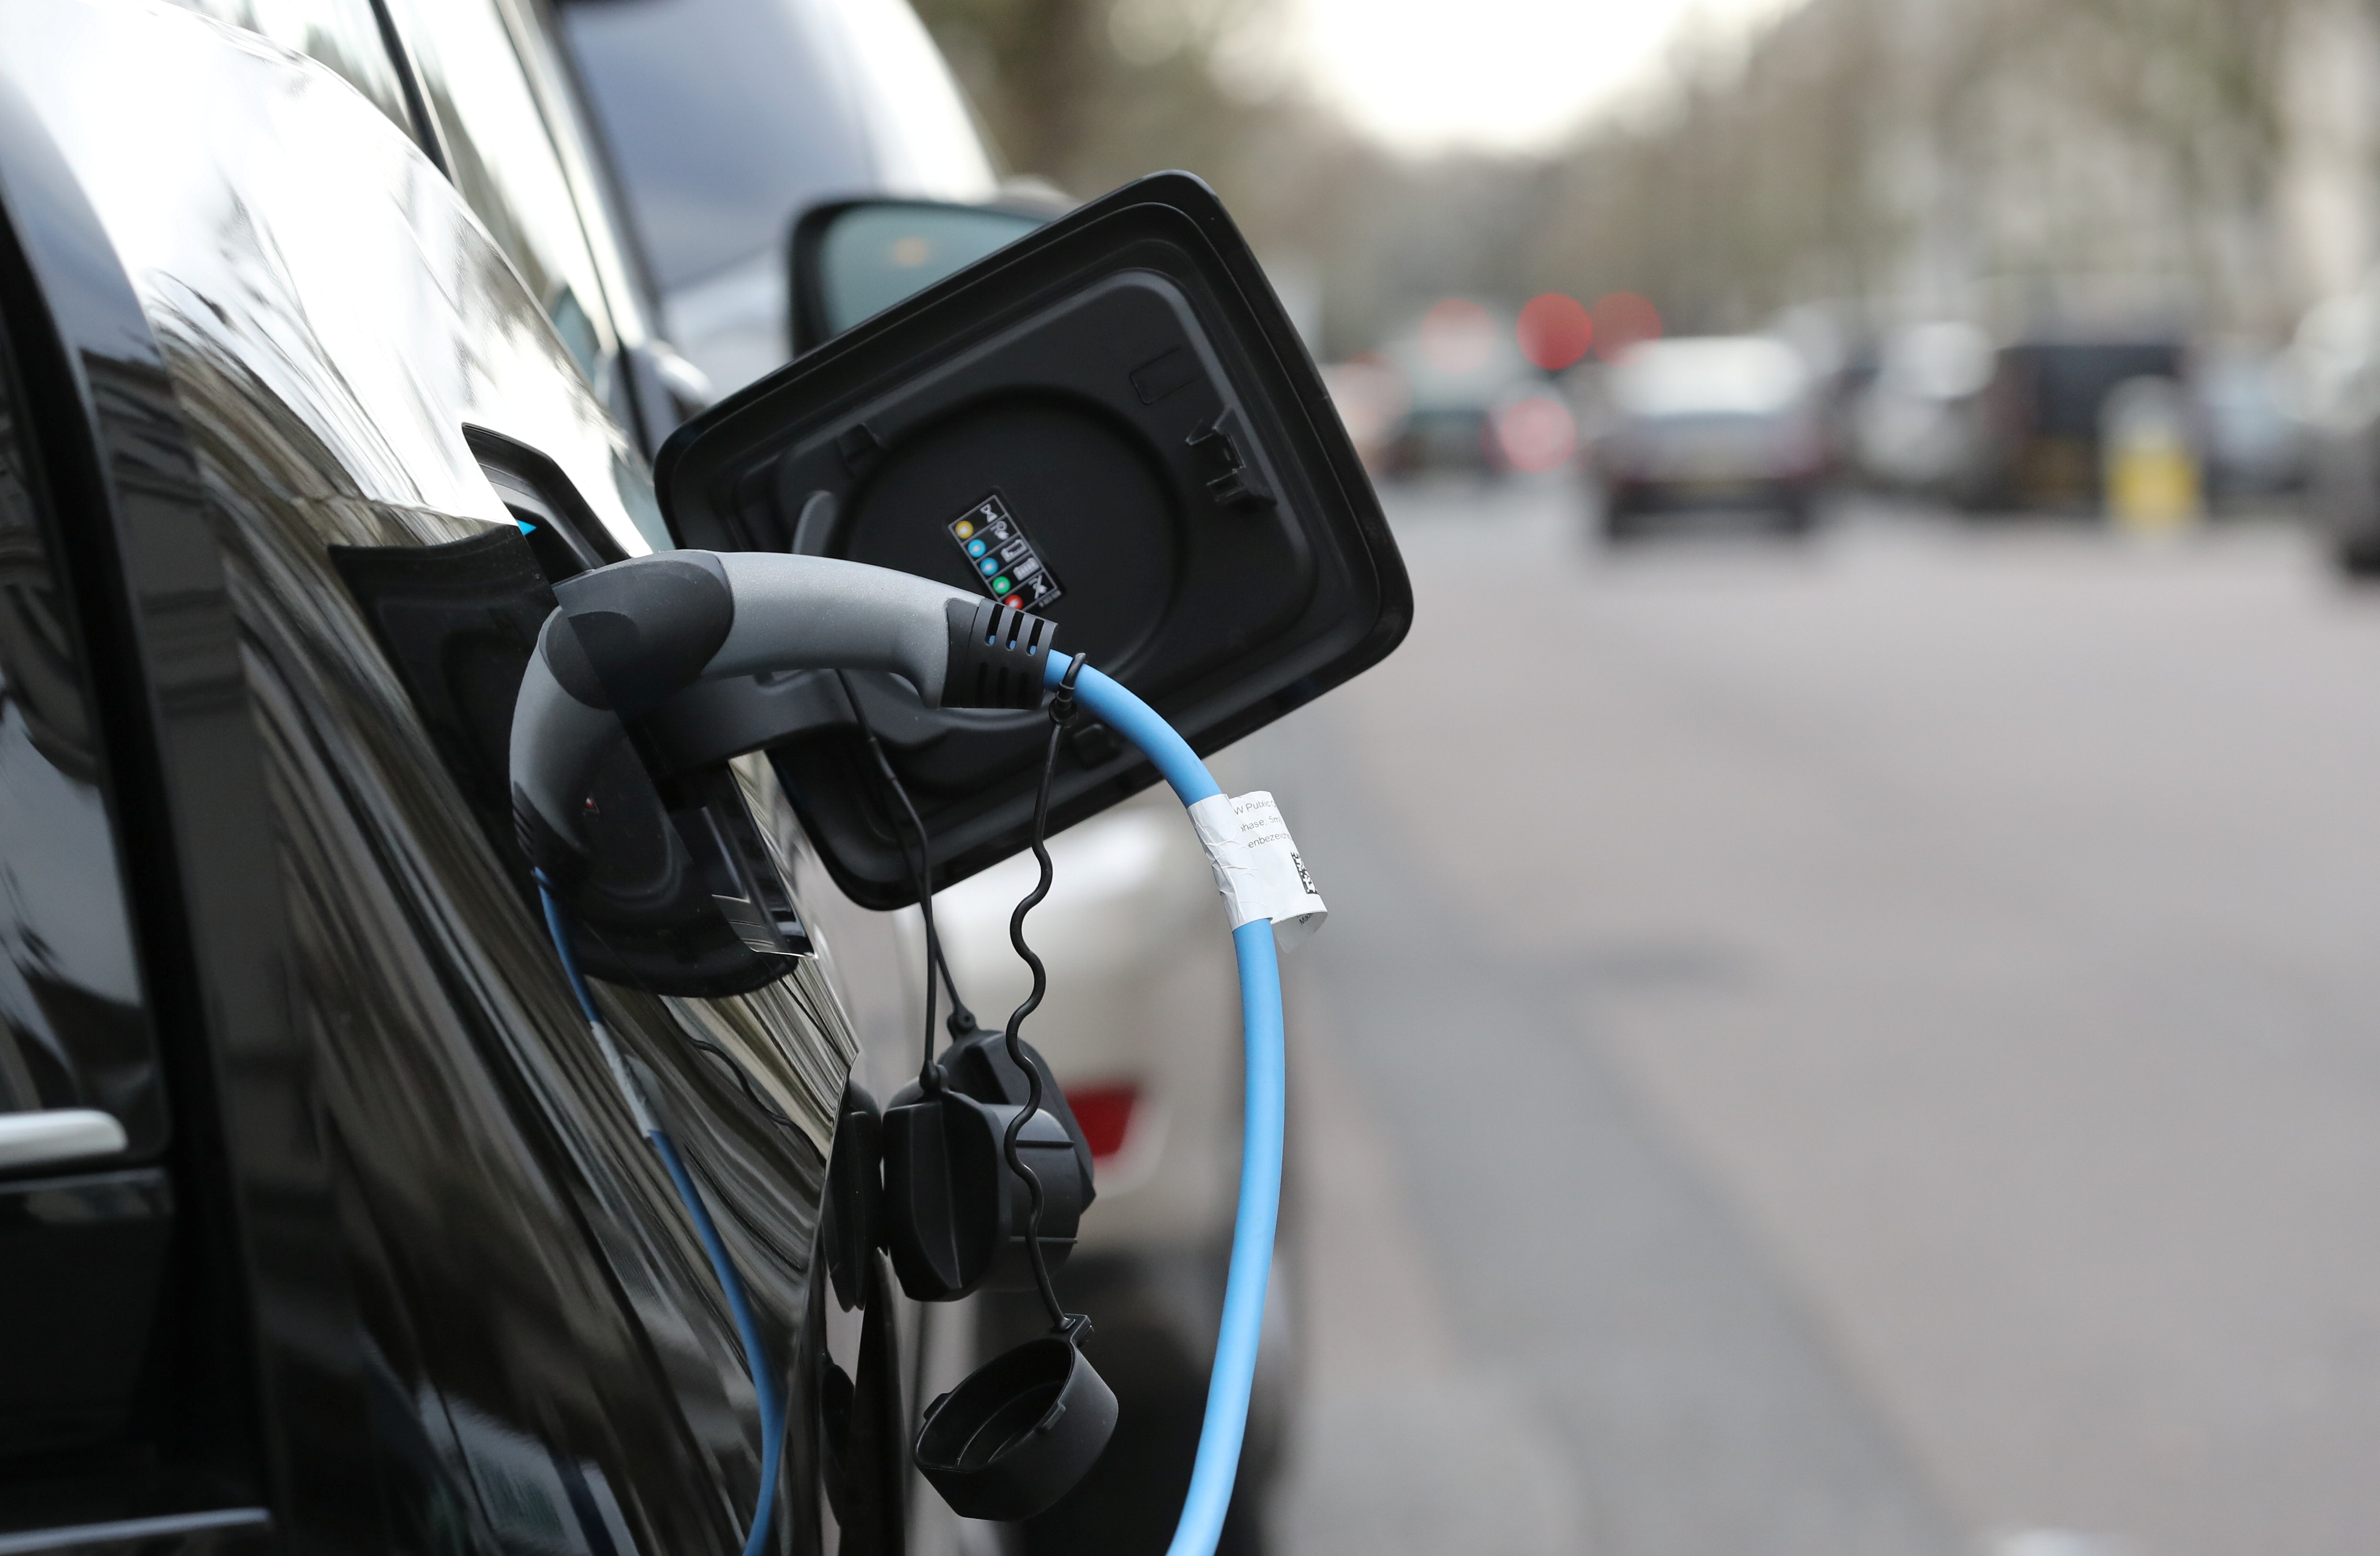 An electric car charges on a street in London, Britain, February 4, 2020.